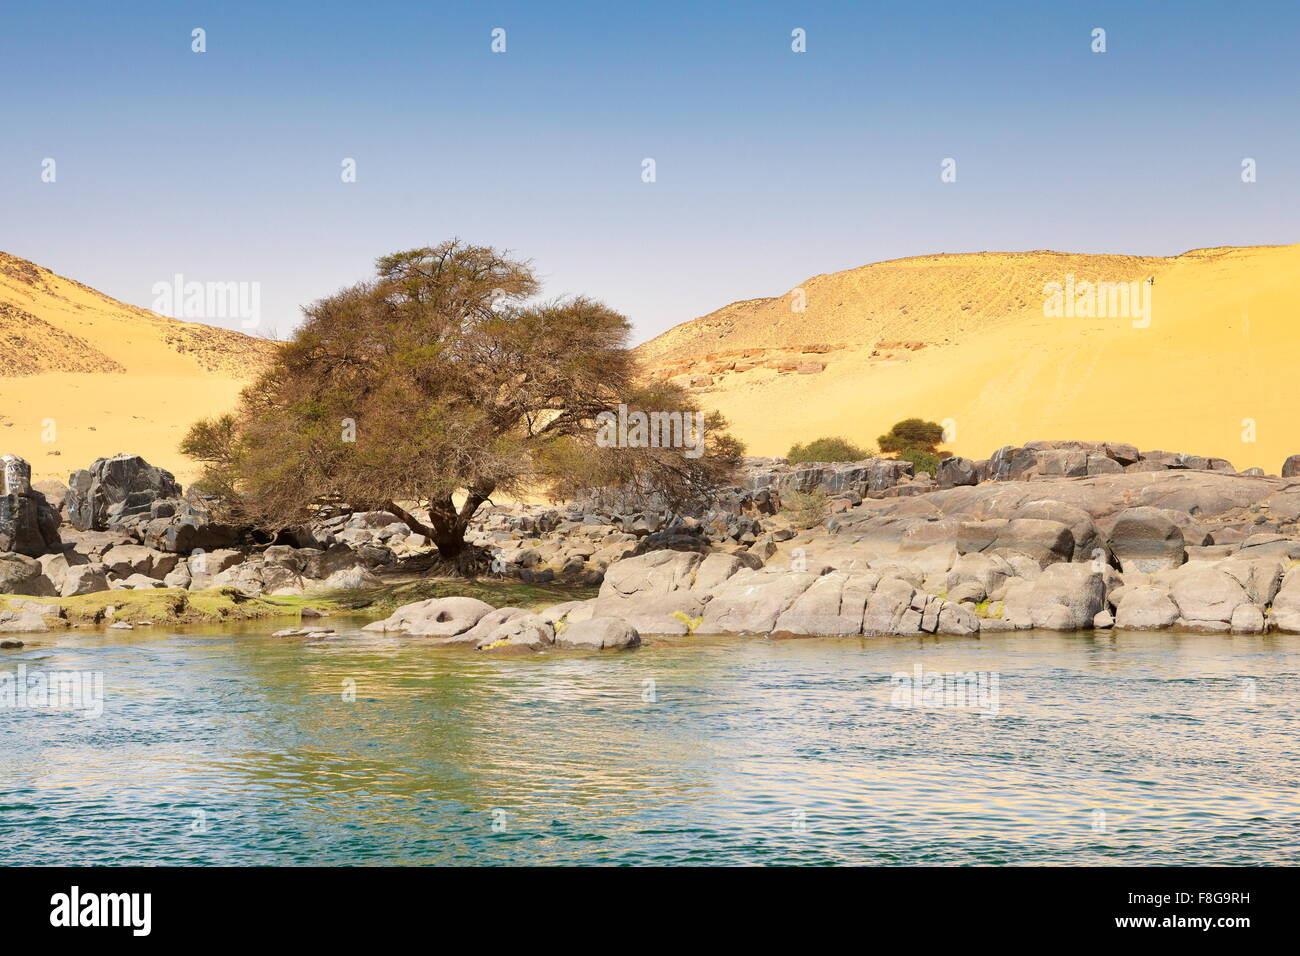 Egypt - bank of the Nile River, protected area of the First Cataract - Stock Image